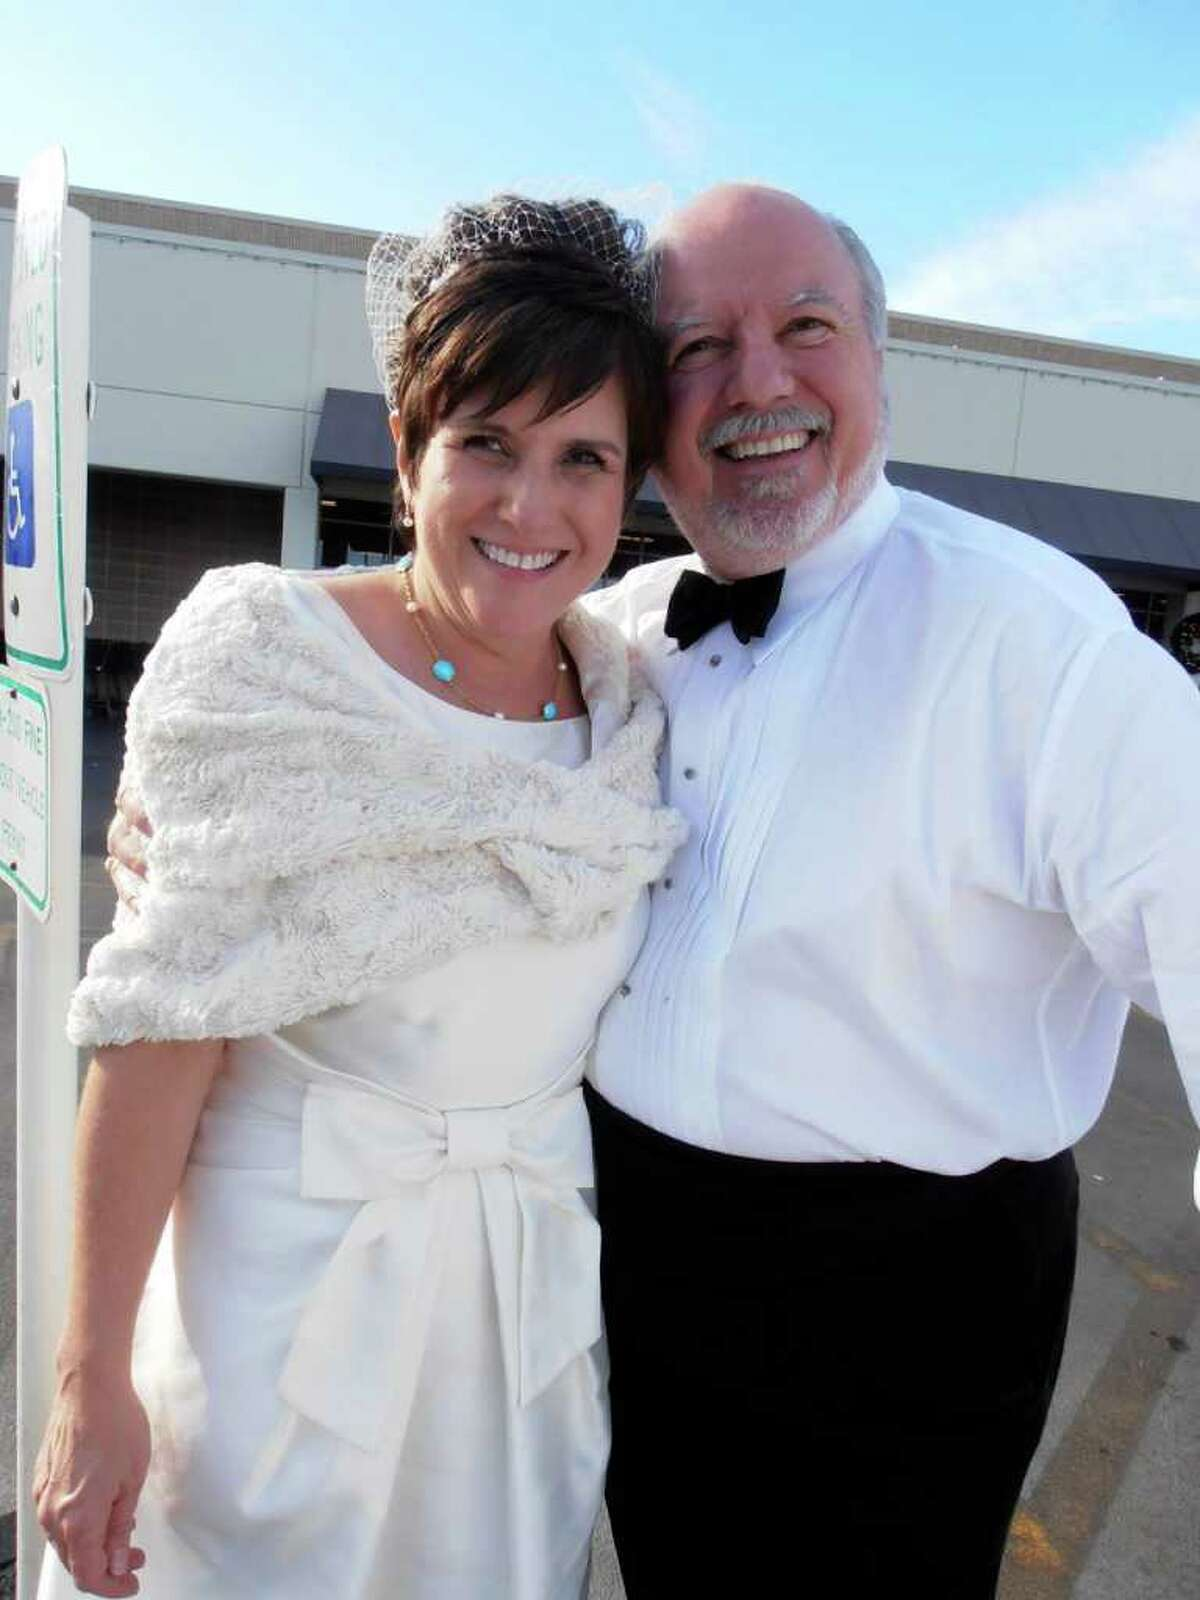 Lisa Petroski and Charles John, who wed at 11:11 a.m. on 11-11-11, run their first errand as husband and wife.